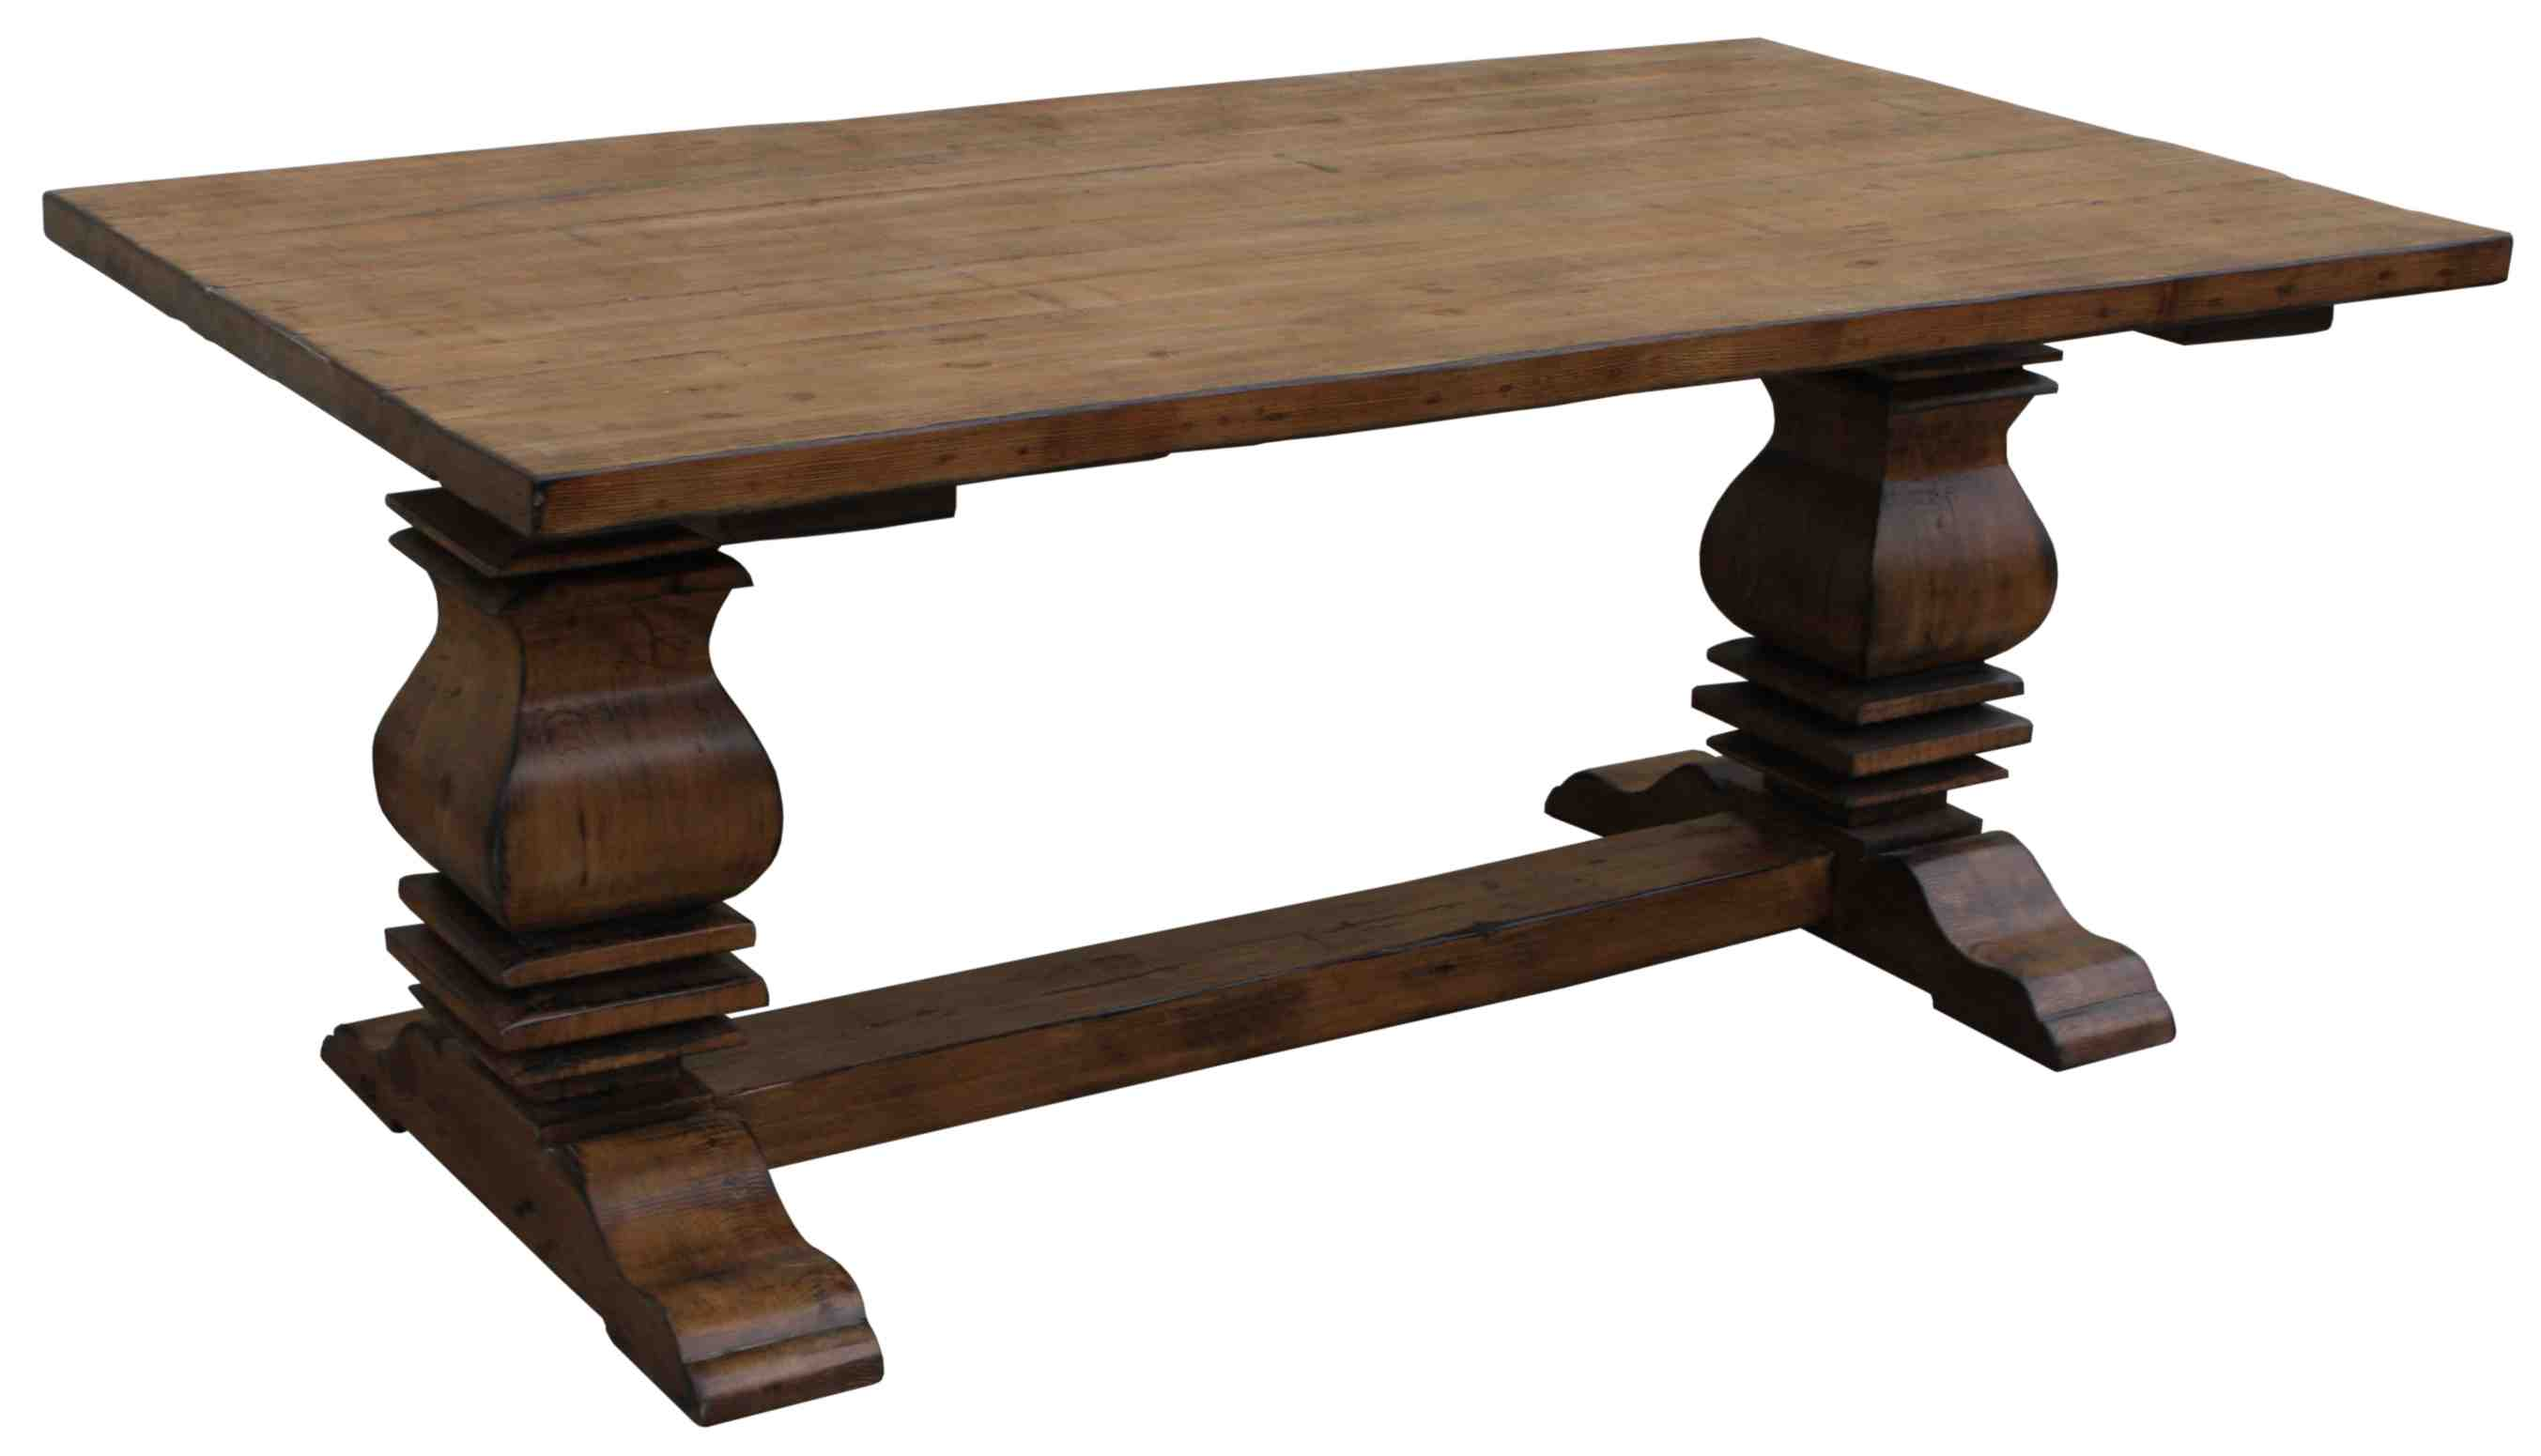 2706x1551px 7 Popular Salvaged Wood Dining Table Picture in Furniture